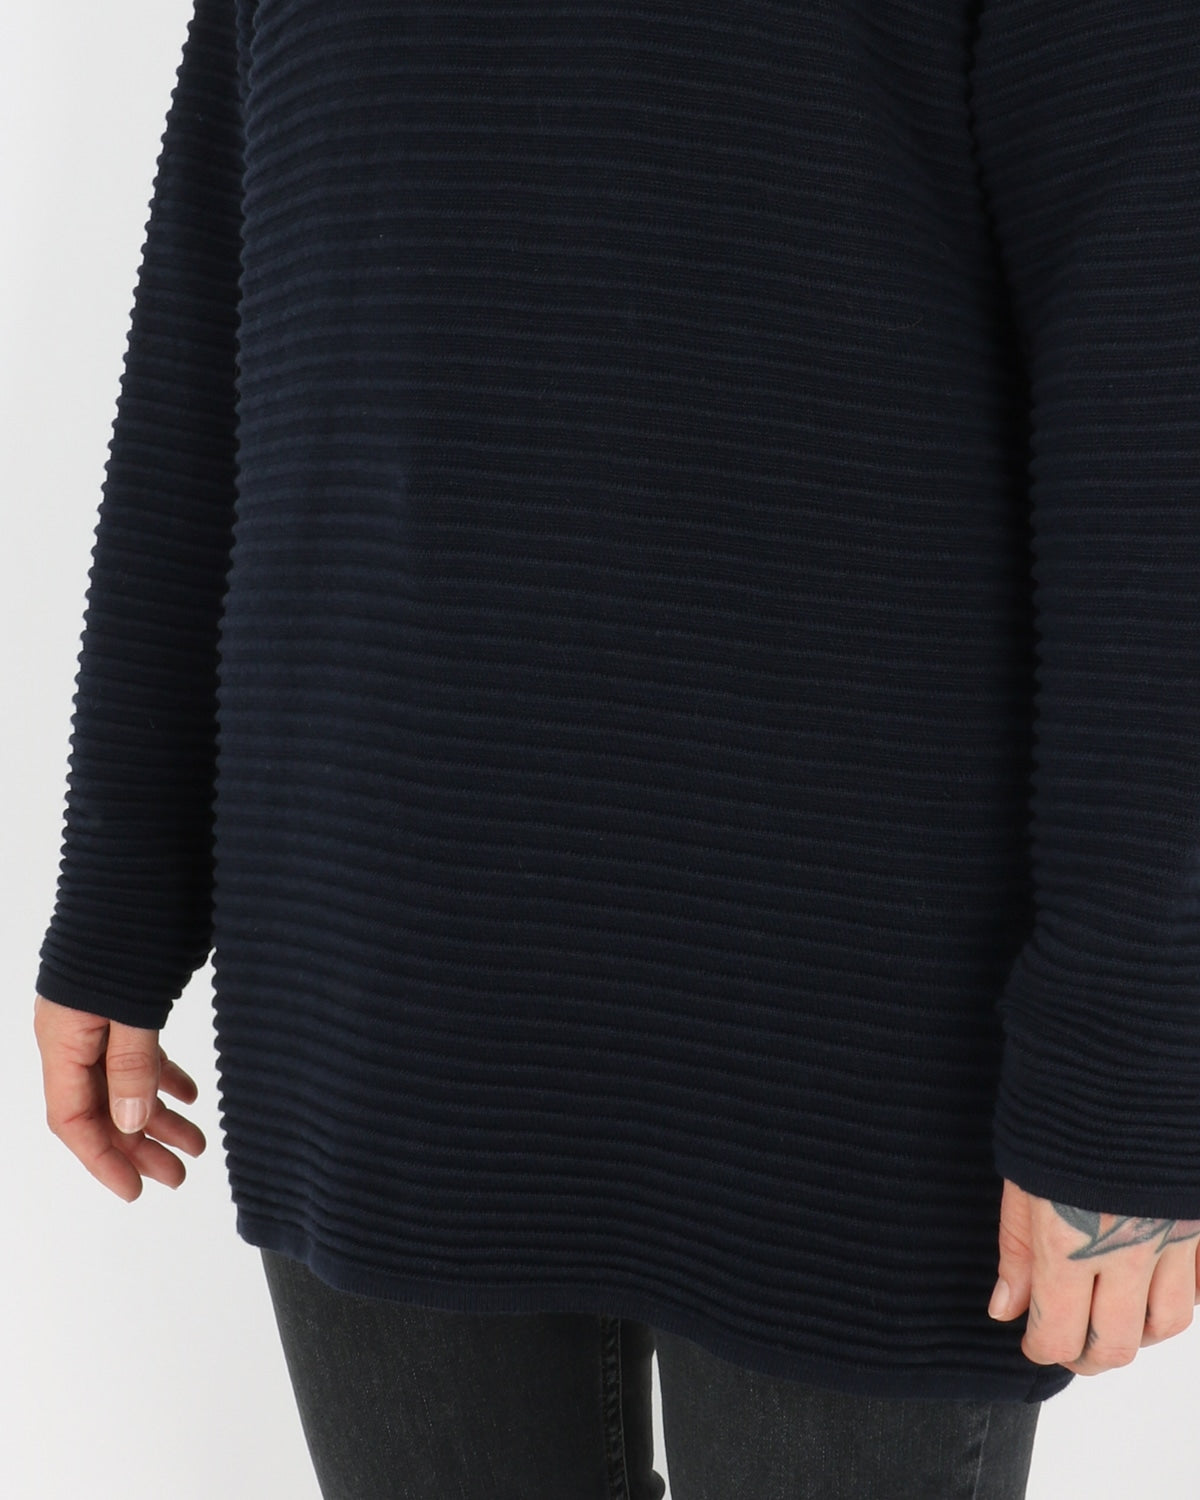 basic apparel_istabella t-neck_navy_3_4